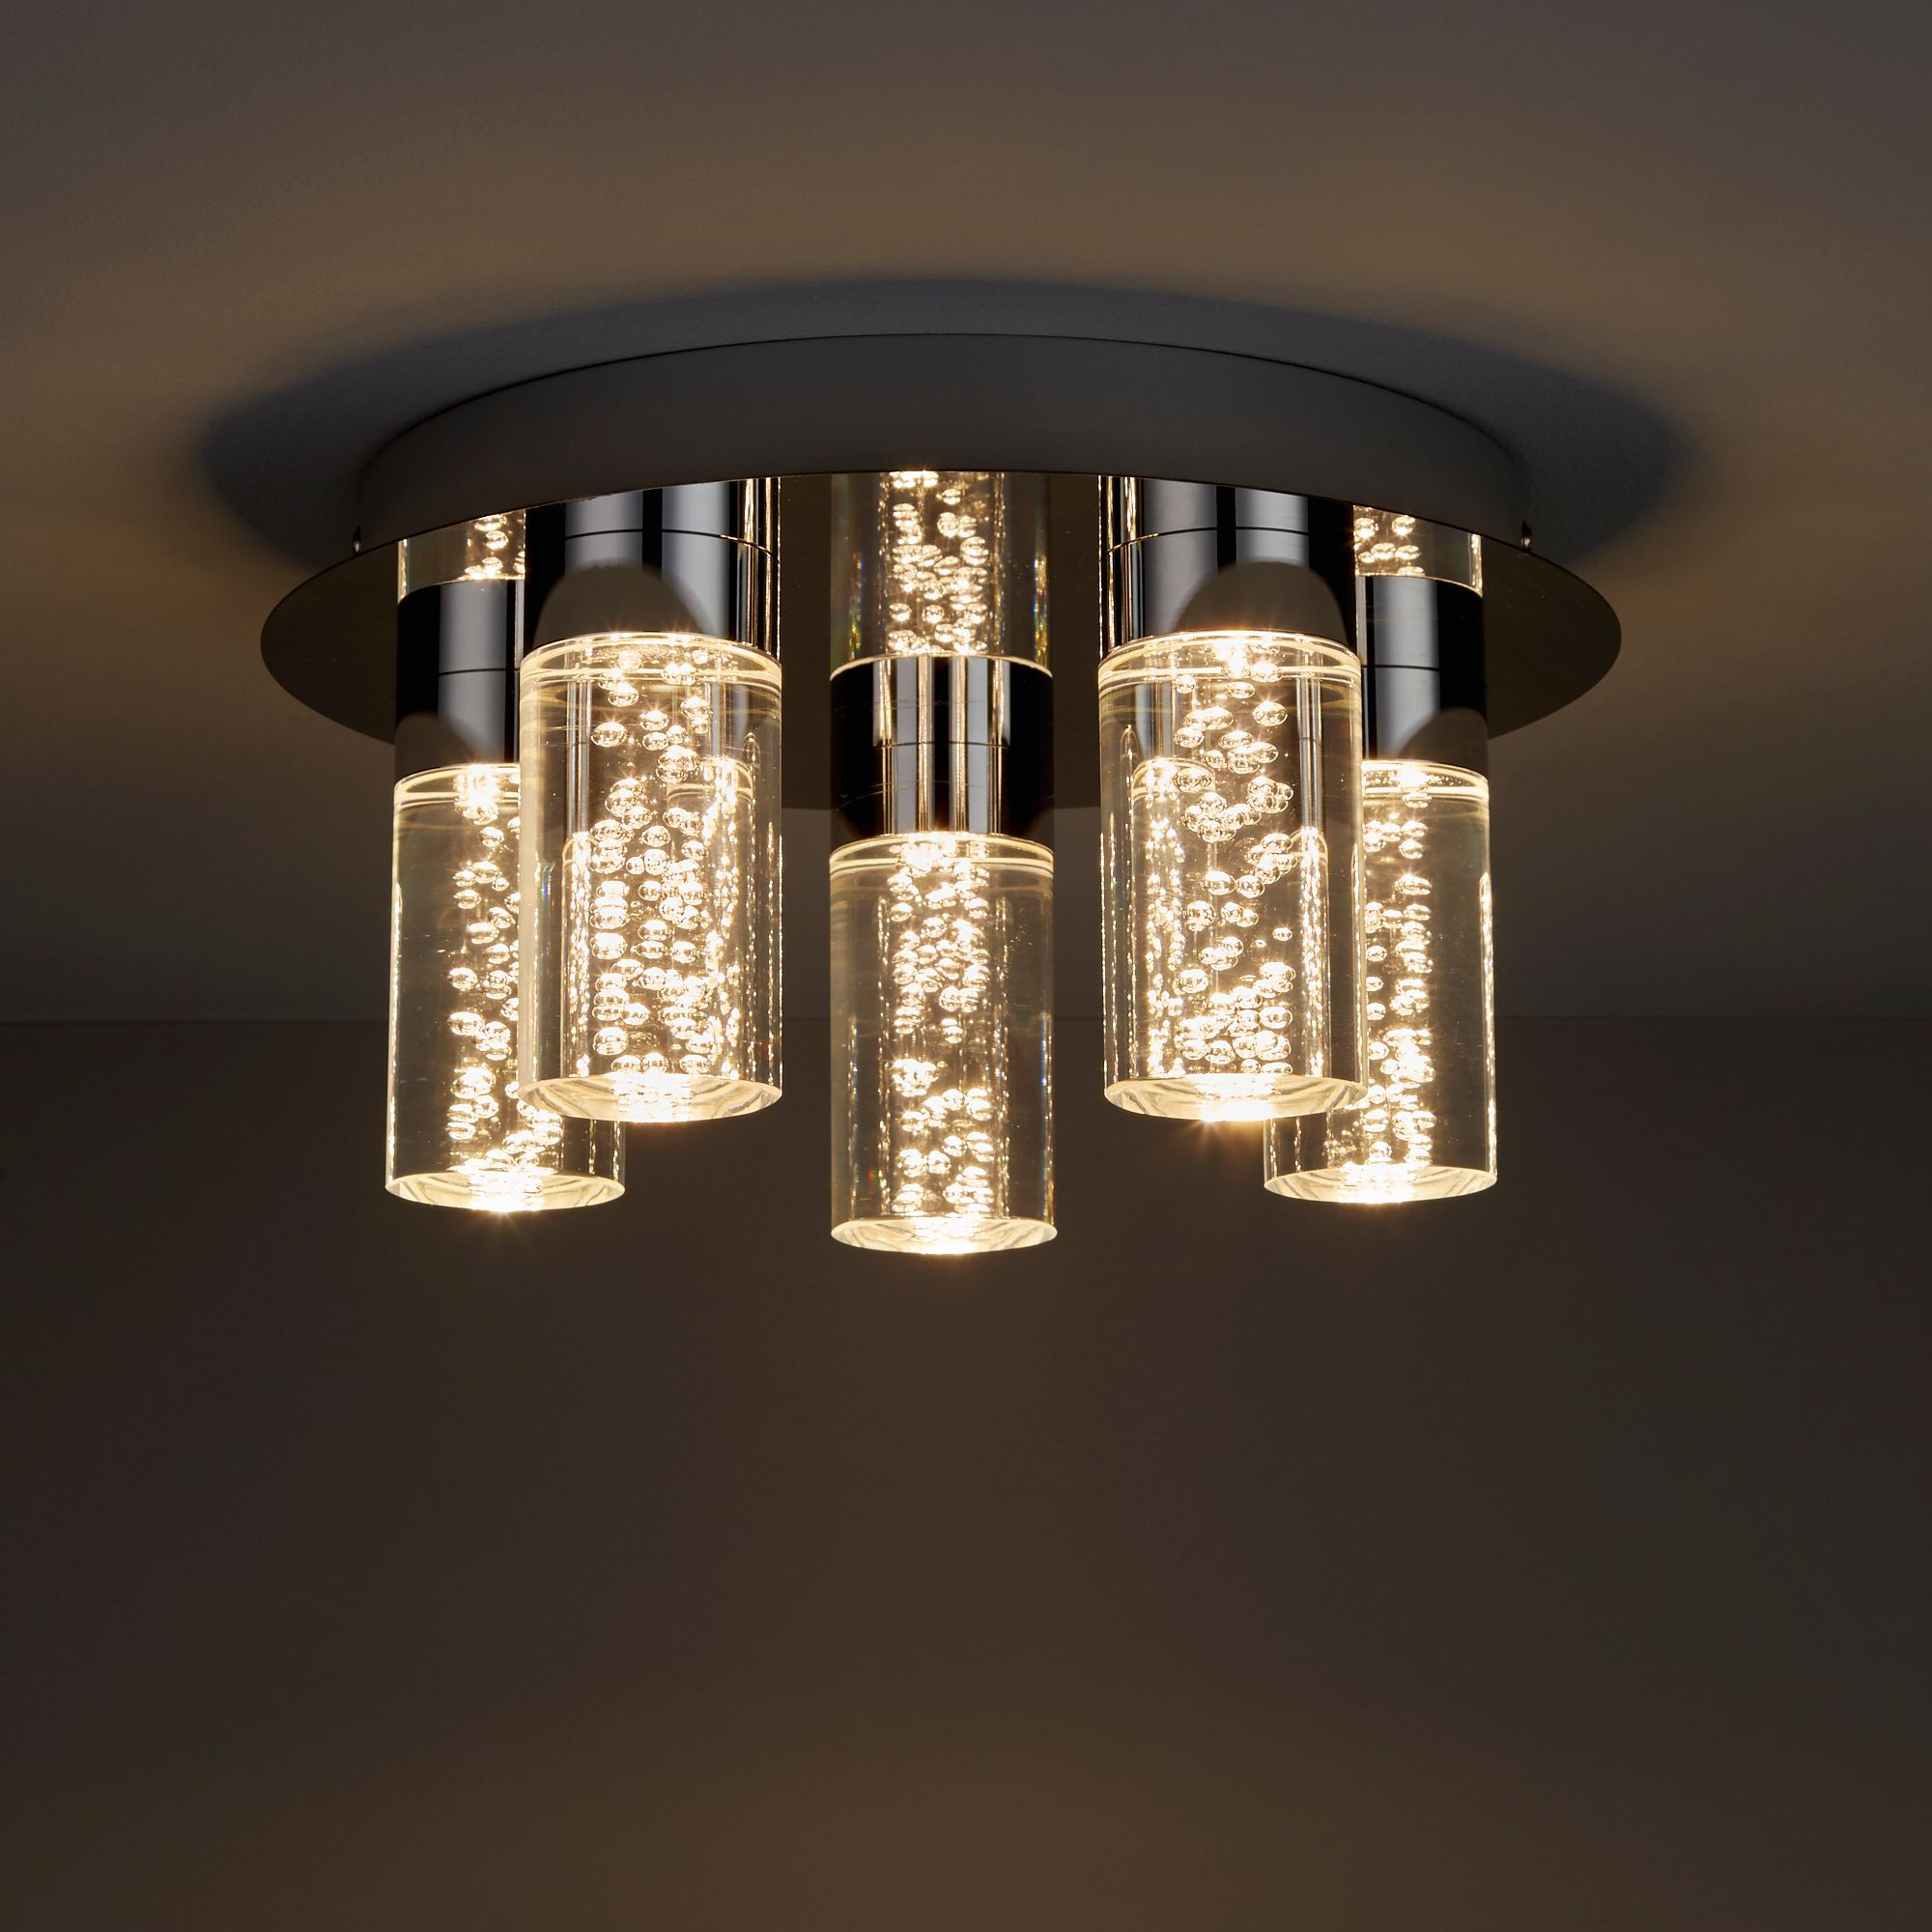 Hubble Chrome effect 5 Lamp Bathroom ceiling light